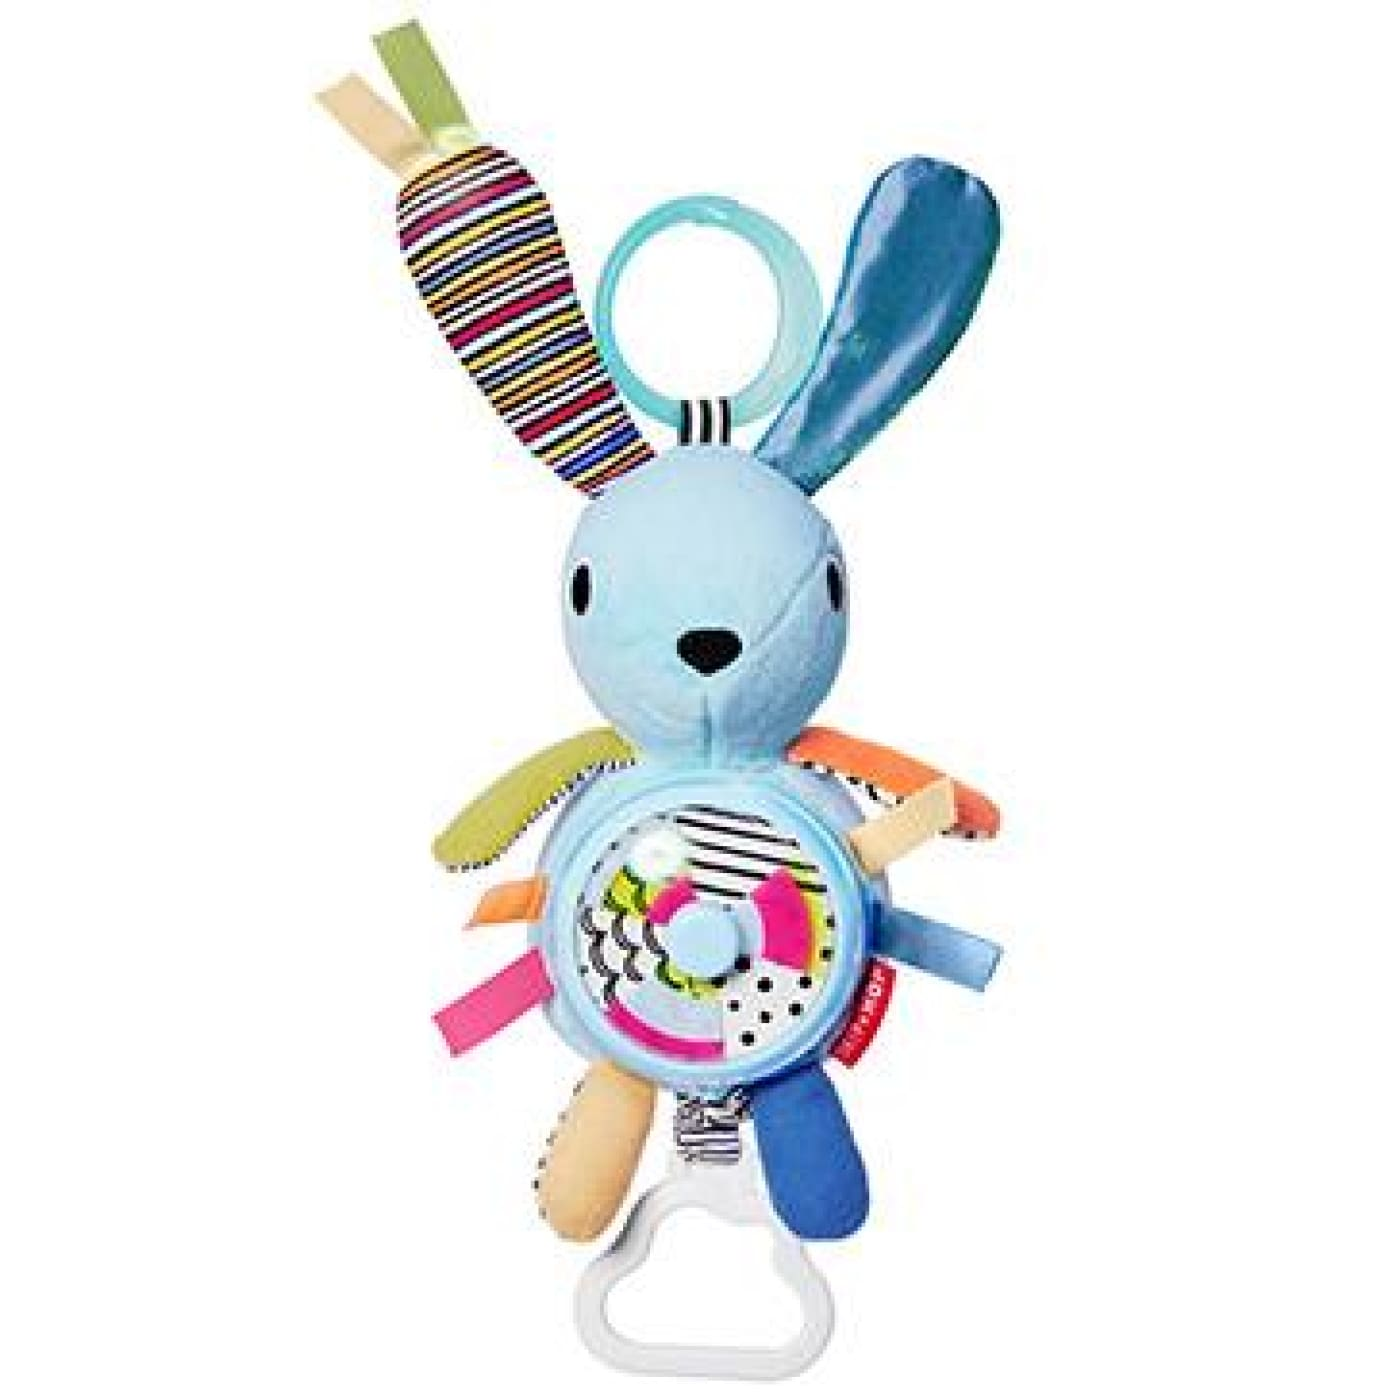 Skip Hop Vibrant Village Spinner Activity Toy - Bunny - Bunny - TOYS & PLAY - HAND HELD/EDUCATIONAL